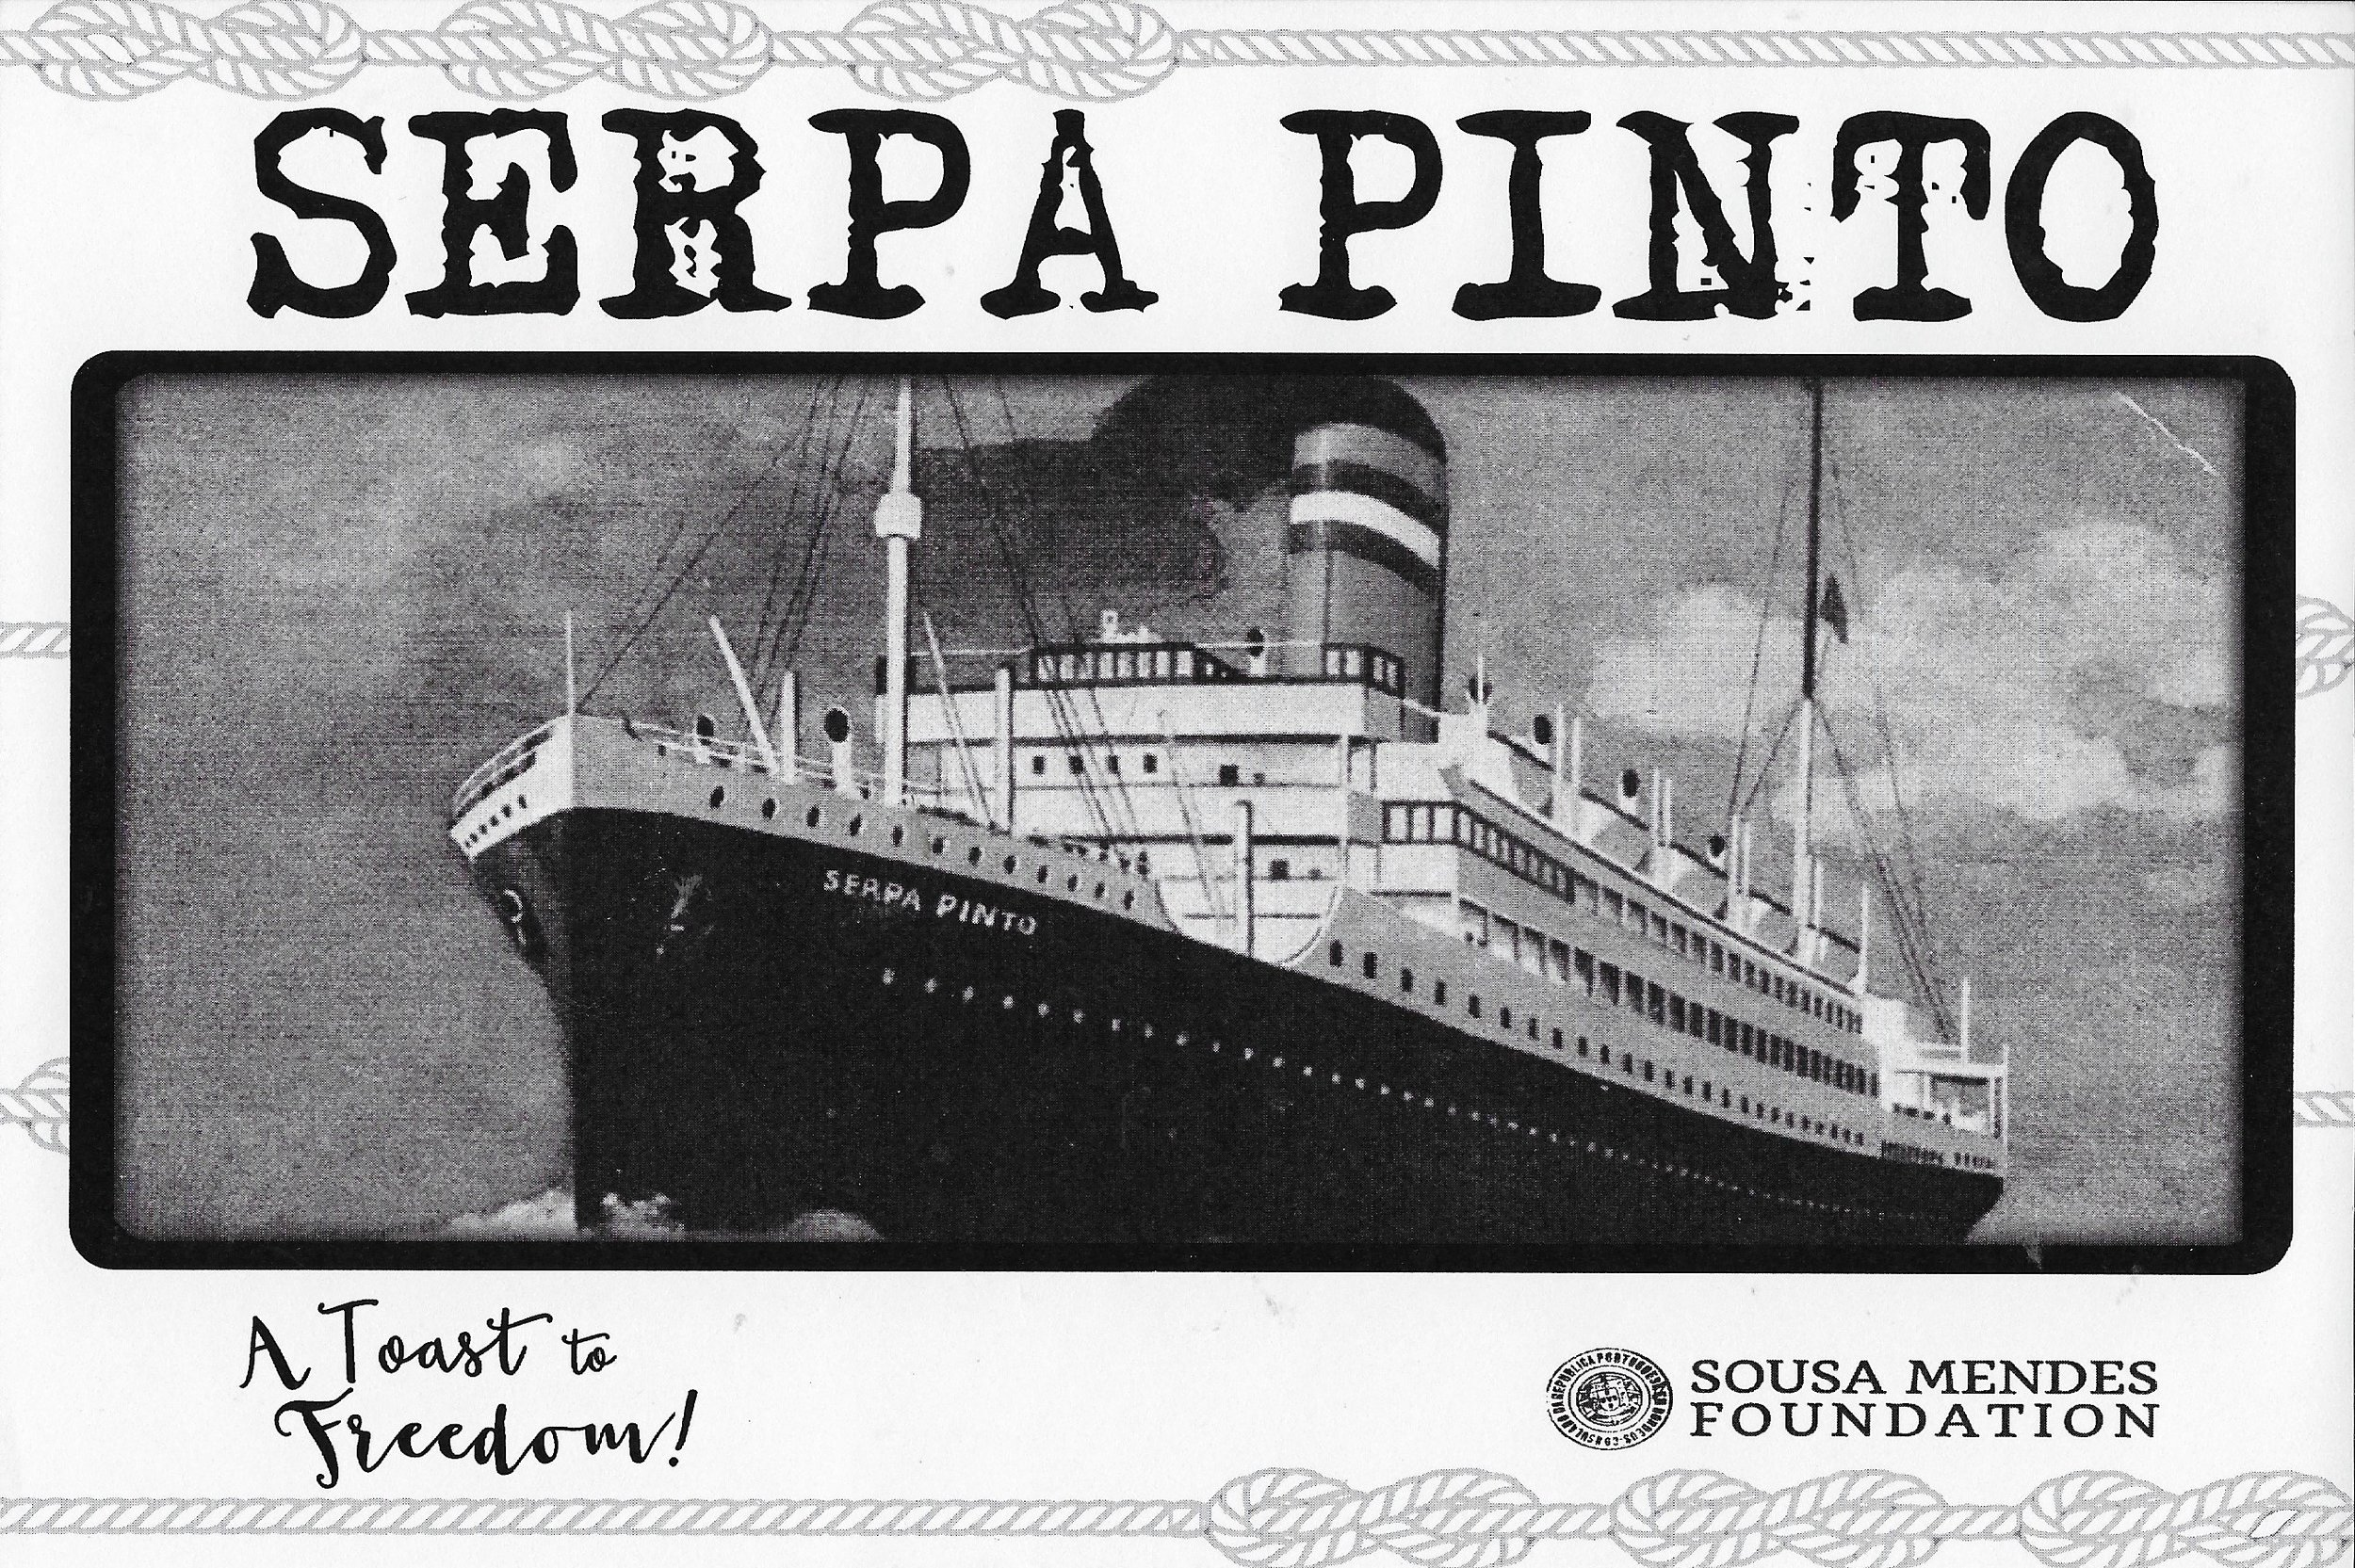 "The   SS Serpa Pinto   made more crossings of the Atlantic during the  Second World War  than any other civilian vessel, leading to her being termed the  Friendship vessel  or  Destiny ship  according to Eckl, Marlen.  ""Review: Serpa Pinto, the Ship of Destiny"" . Casa Stefan Zweig."